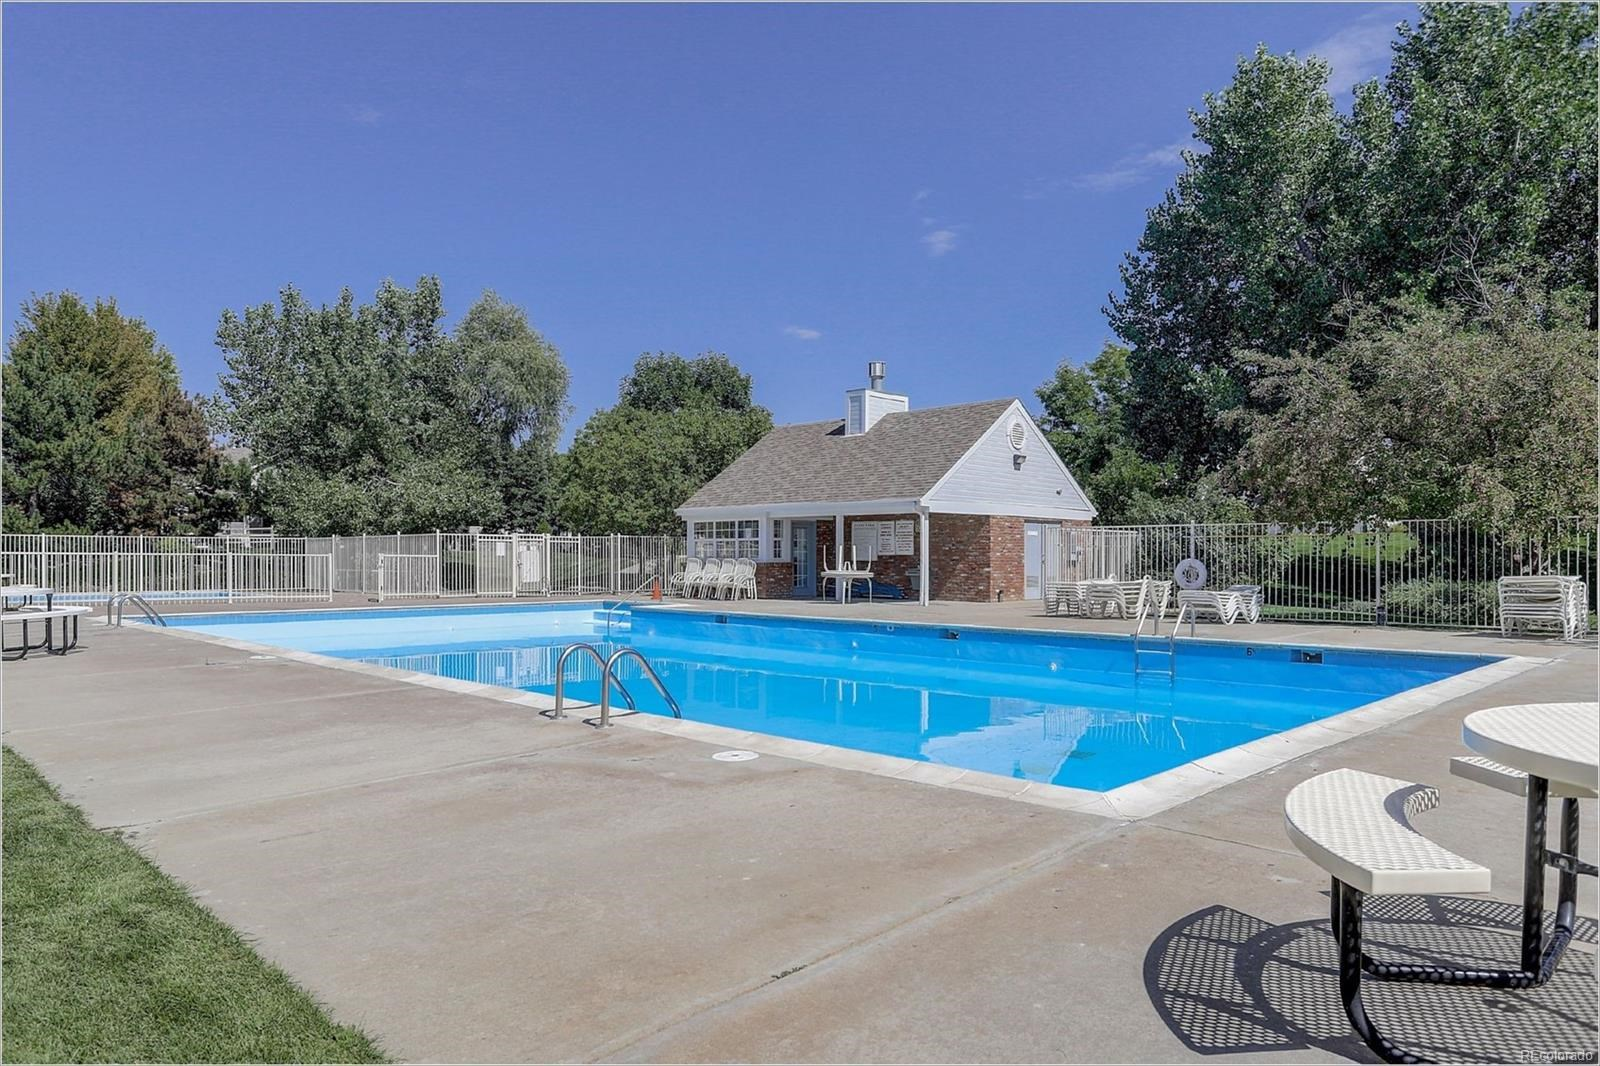 MLS# 8327774 - 38 - 806 W 127th Court, Westminster, CO 80234